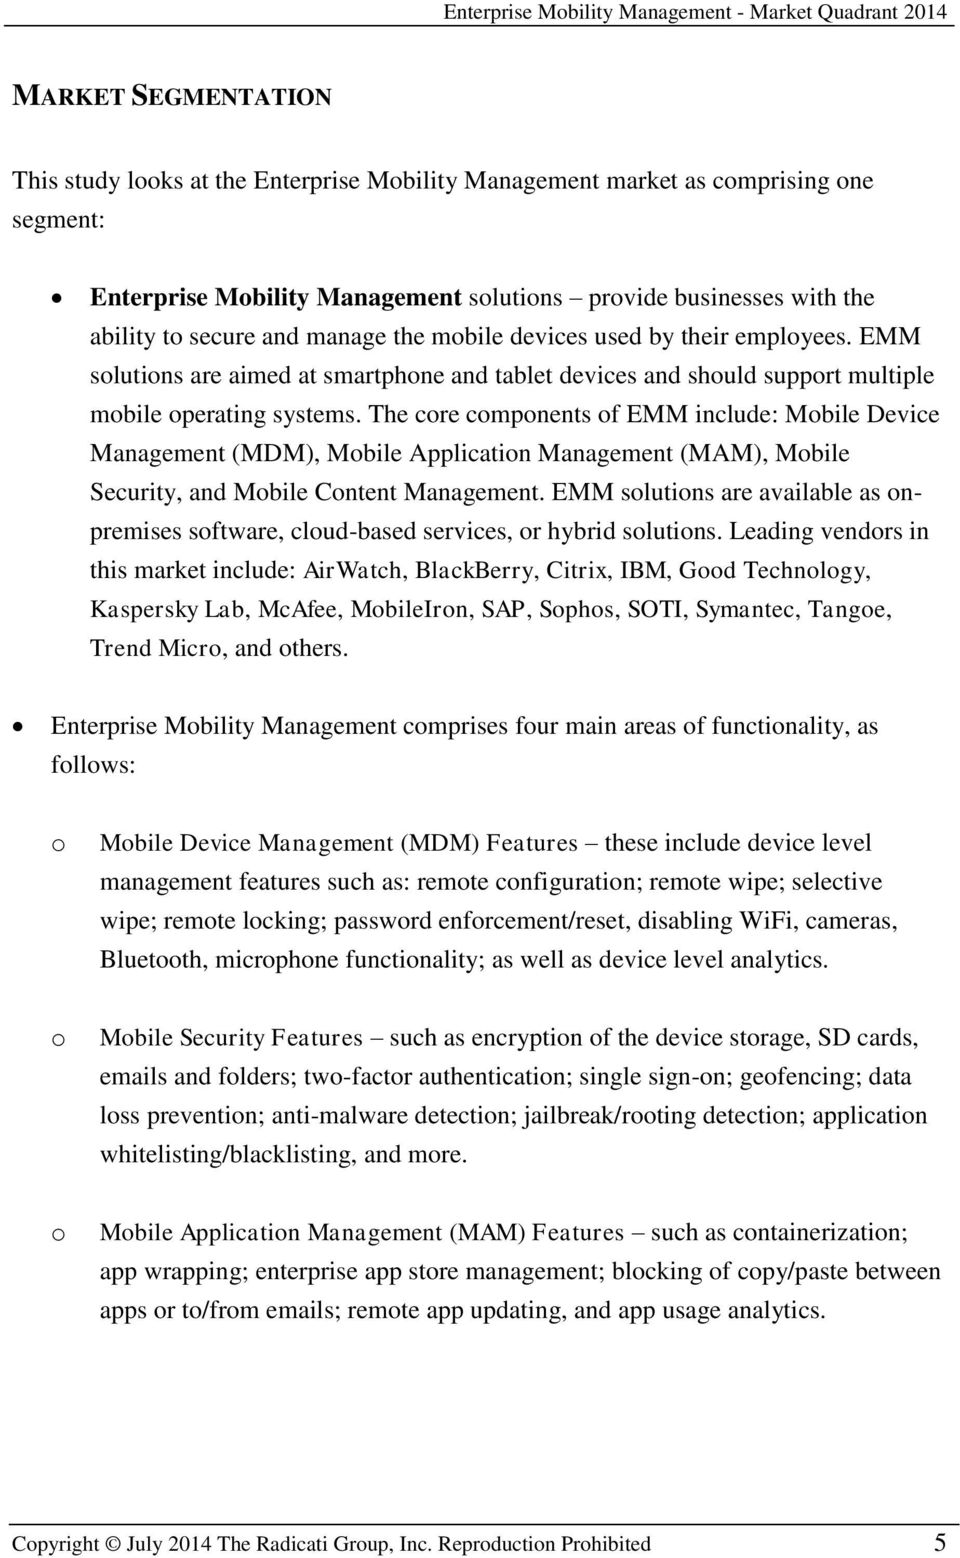 The core components of EMM include: Mobile Device Management (MDM), Mobile Application Management (MAM), Mobile Security, and Mobile Content Management.